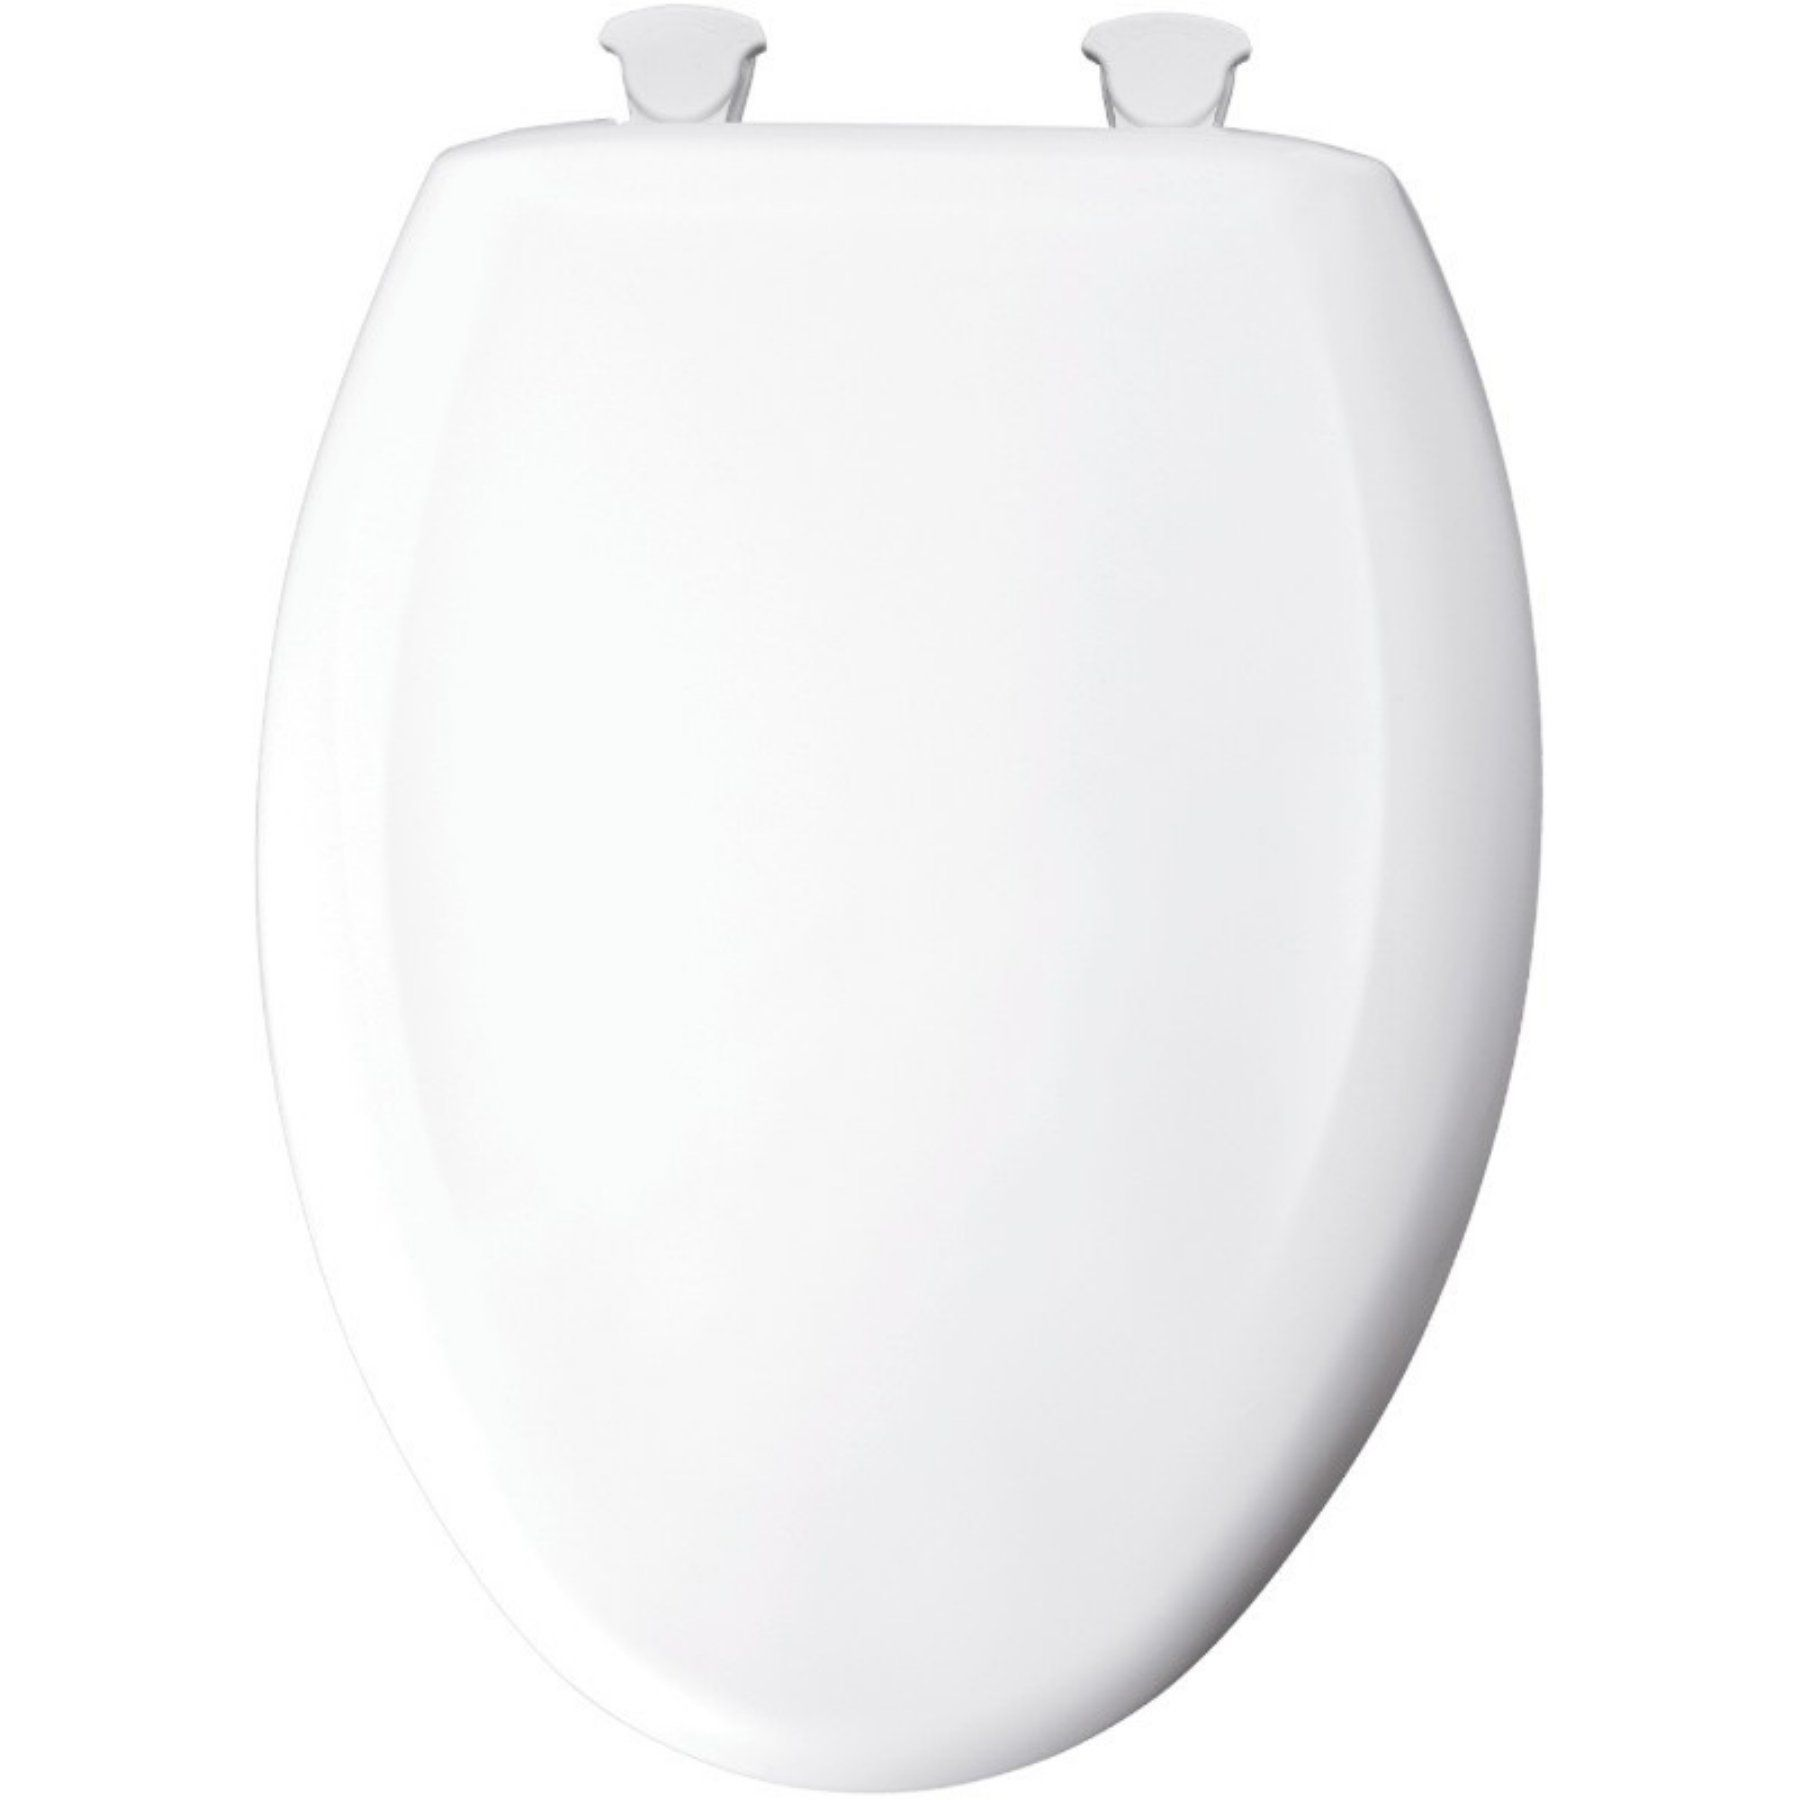 Mayfair Bemis 120slowe 000 Slow Close Plastic Toilet Seat With